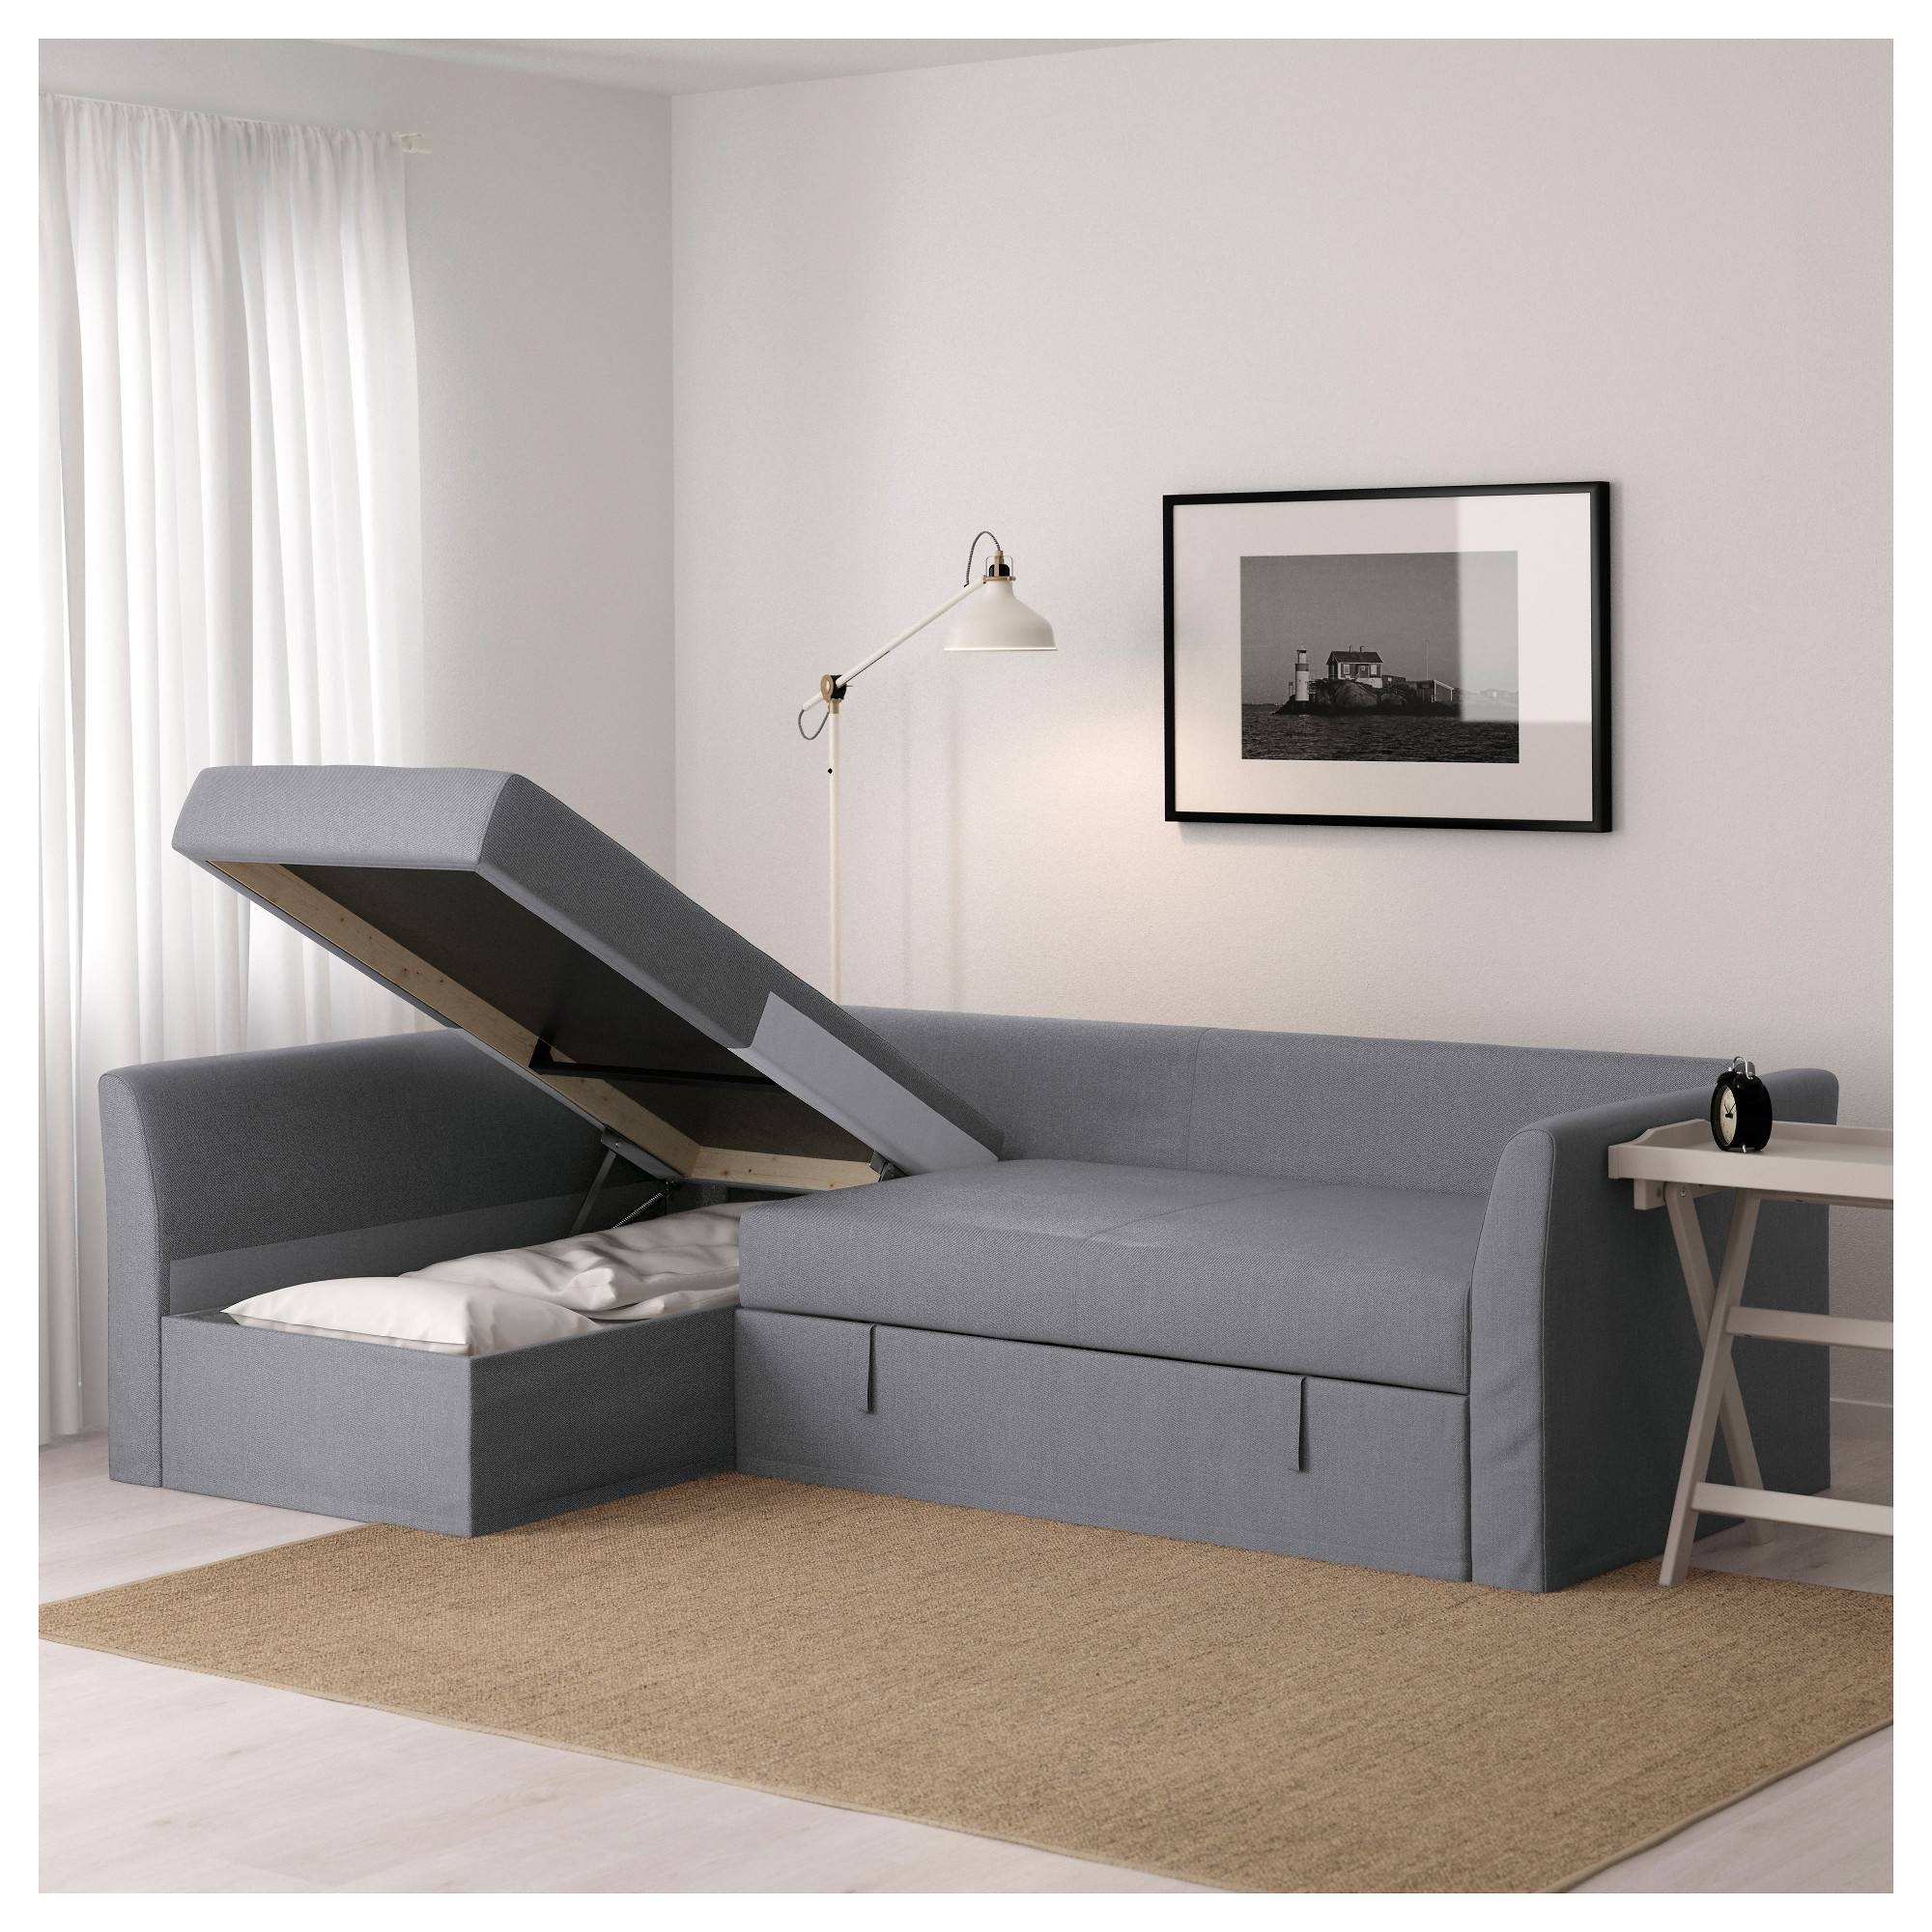 Furniture: Ikea Sofa Beds | Sofa With Pull Out Bed Ikea | Ikea with regard to Cheap Corner Sofa Bed (Image 13 of 30)